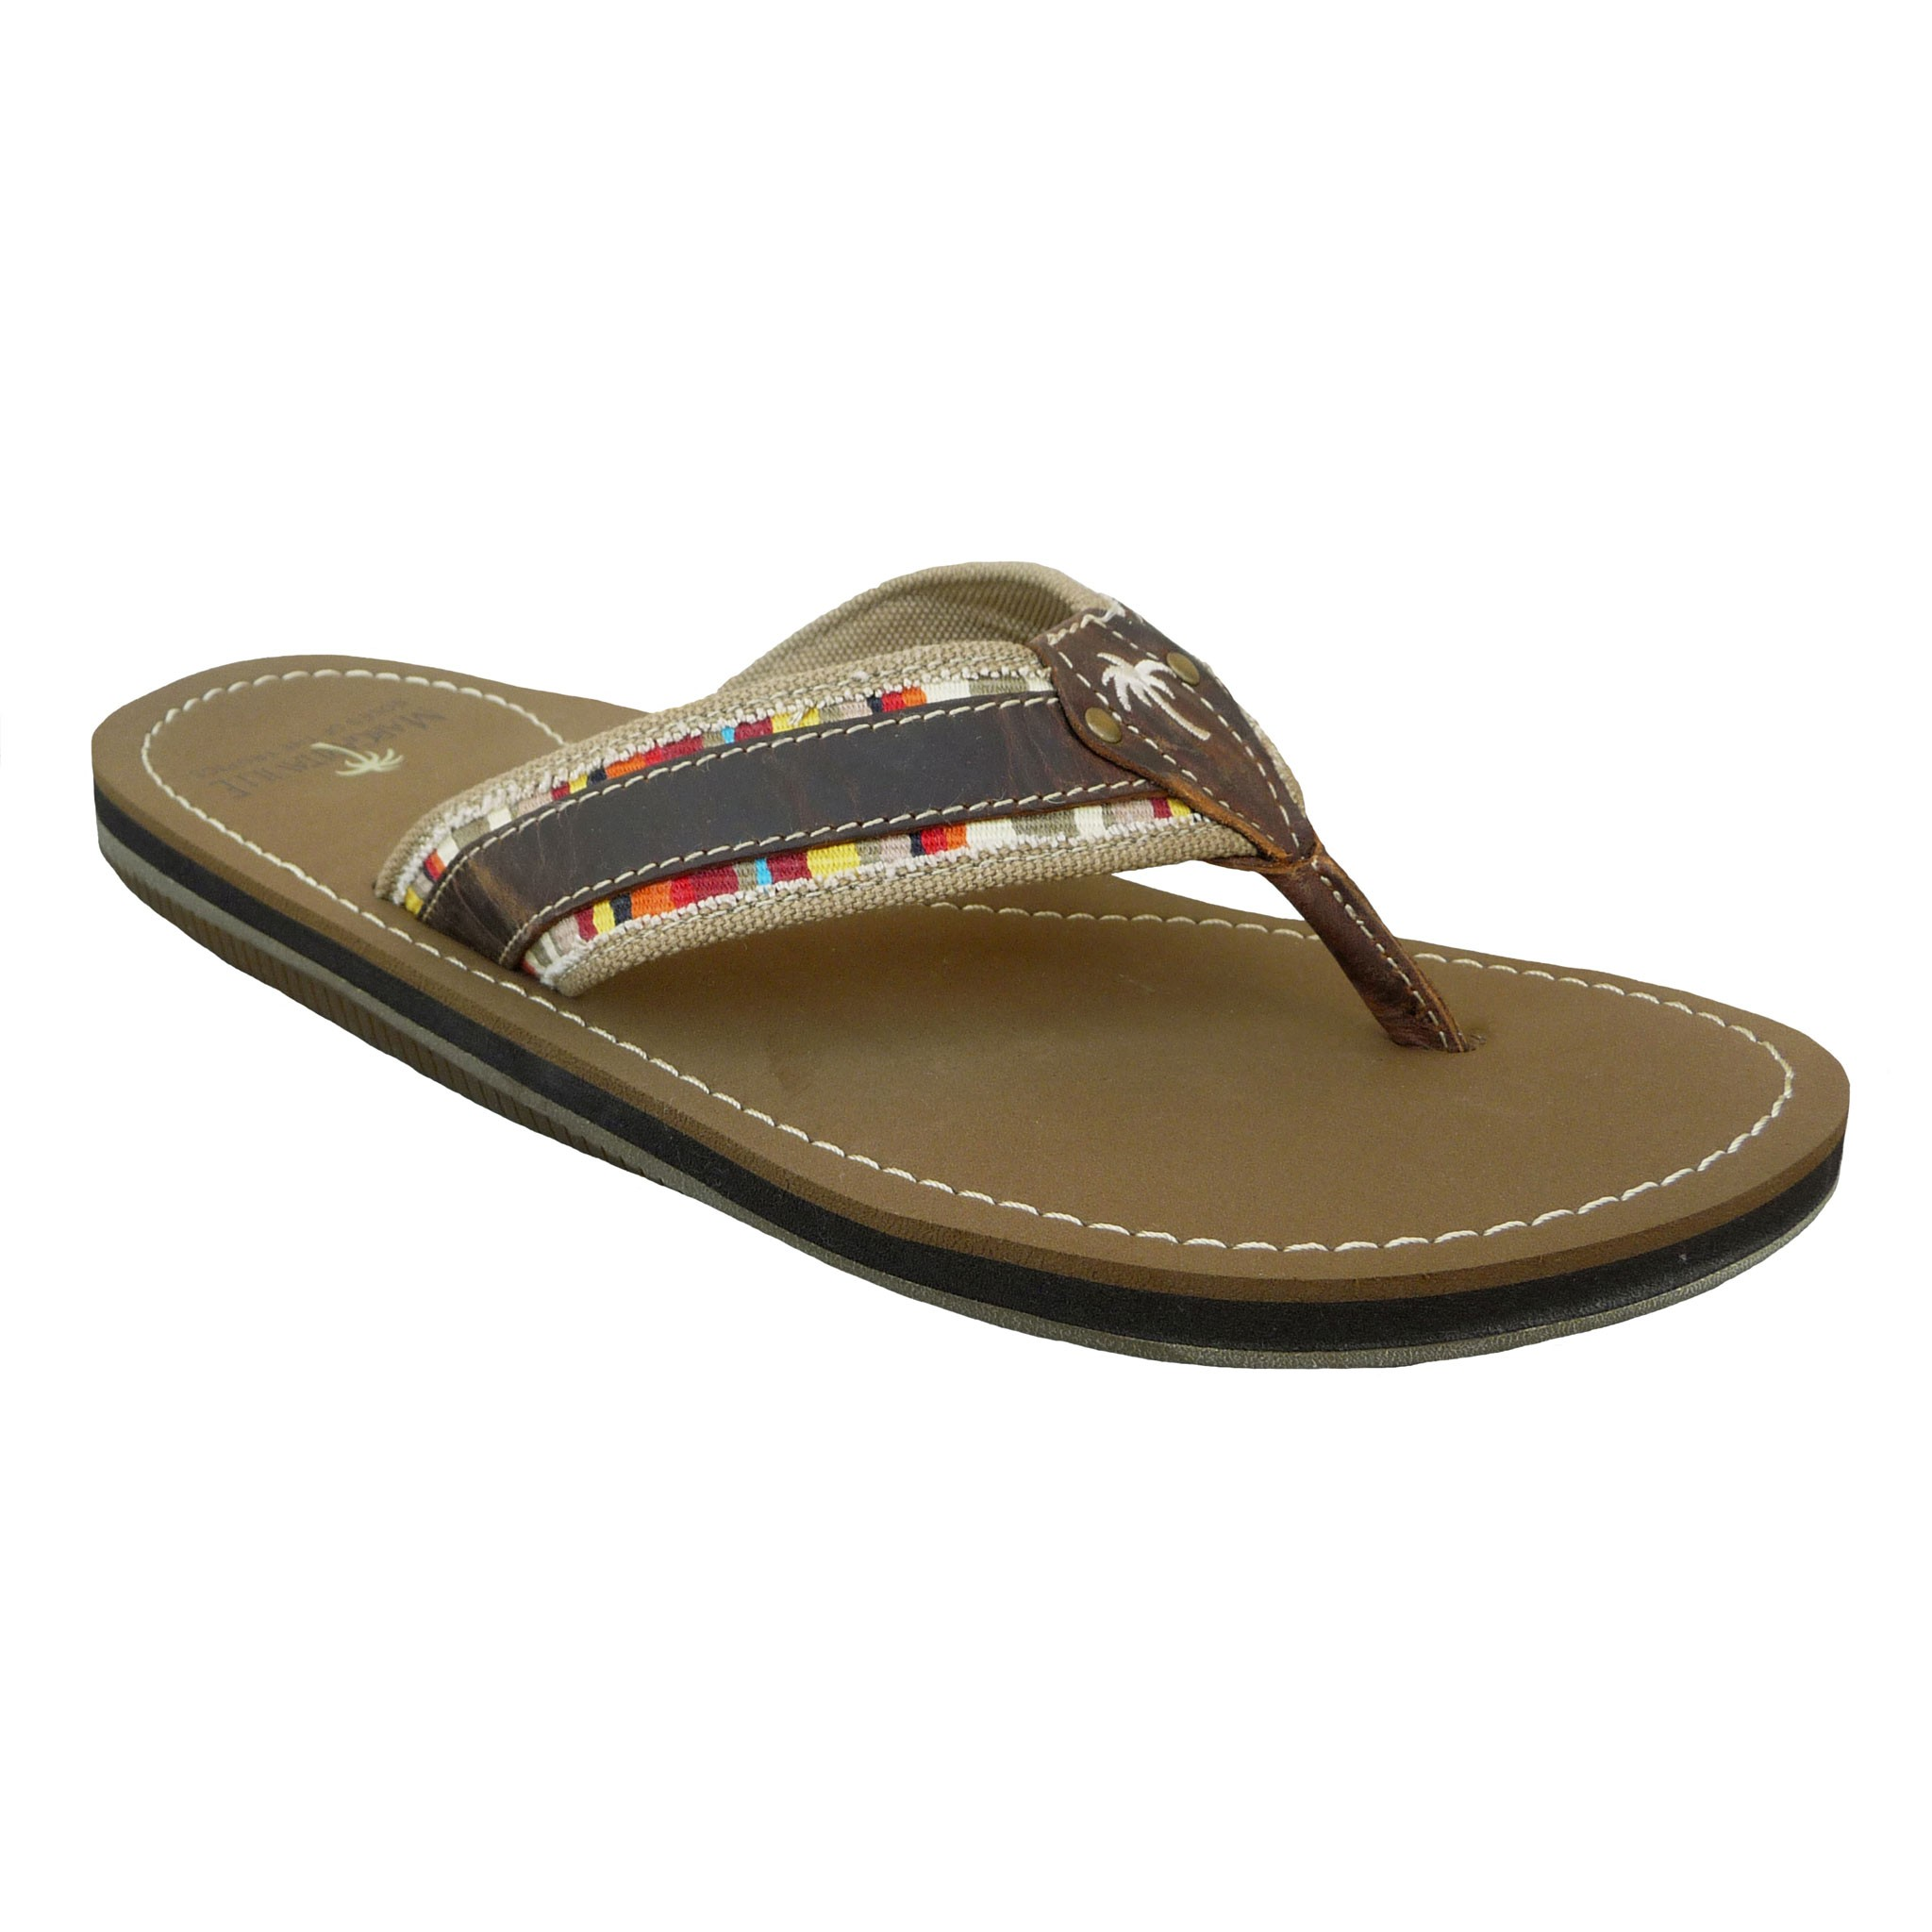 flip-flop (flĭp′flŏp′) n. 1. The movement or sound of repeated flapping. 2. A reversal, as of a stand or position: a foreign policy flip-flop. 3. A backless, often foam rubber sandal held to the foot at the big toe by means of a thong. 4. A backward somersault or handspring. 5. An electronic circuit or mechanical device capable of assuming either.